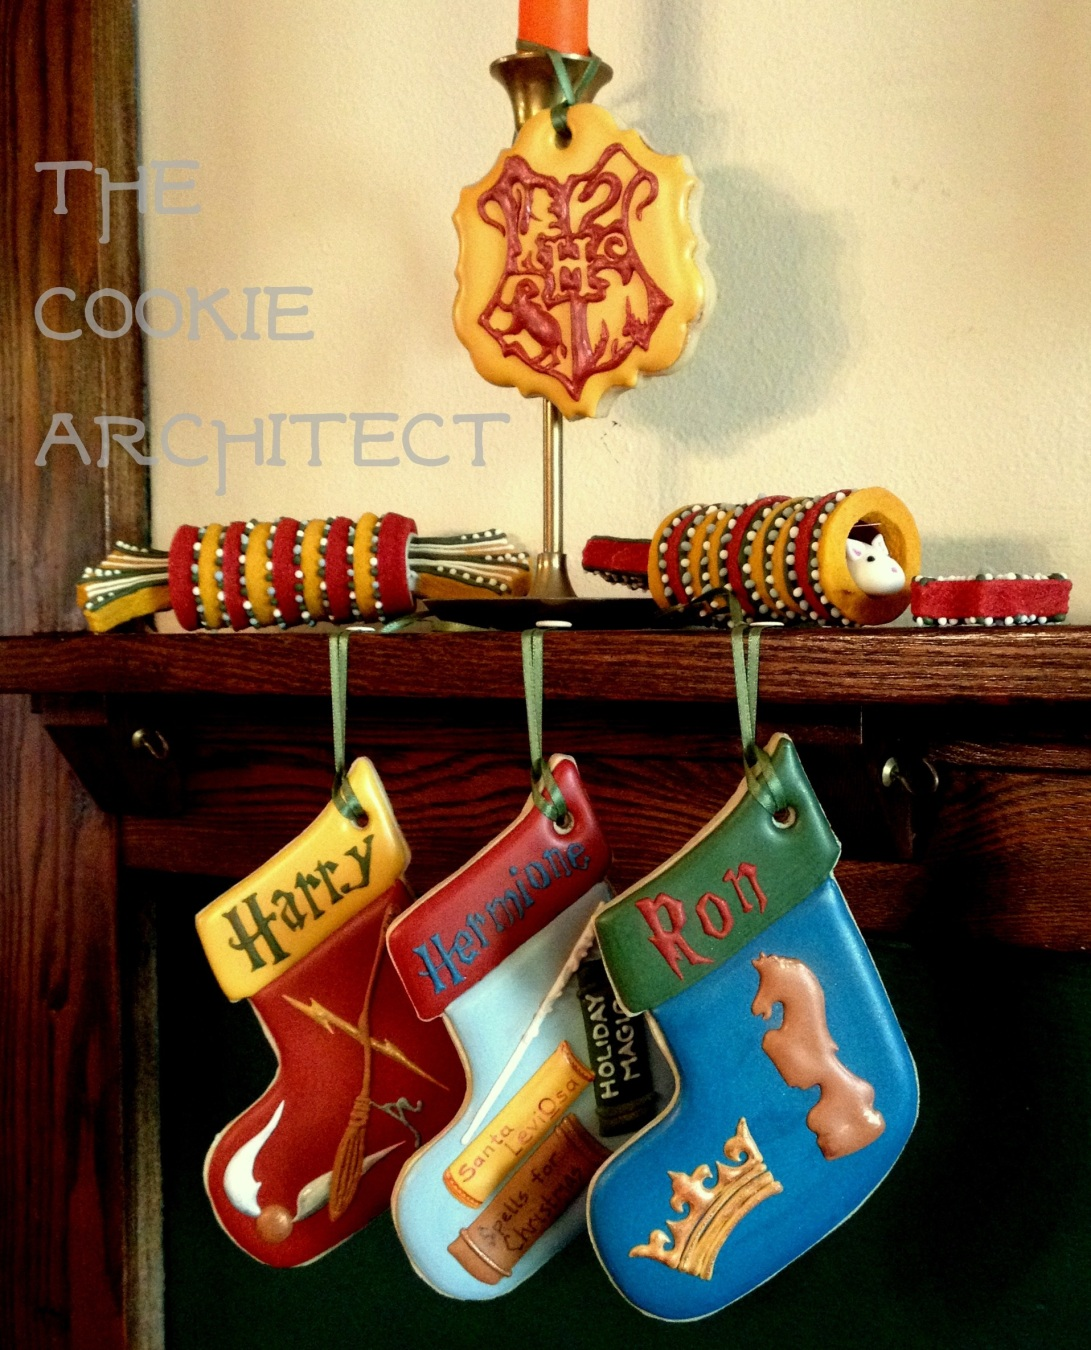 3D Shot Christmas at Hogwarts | The Cookie Architect